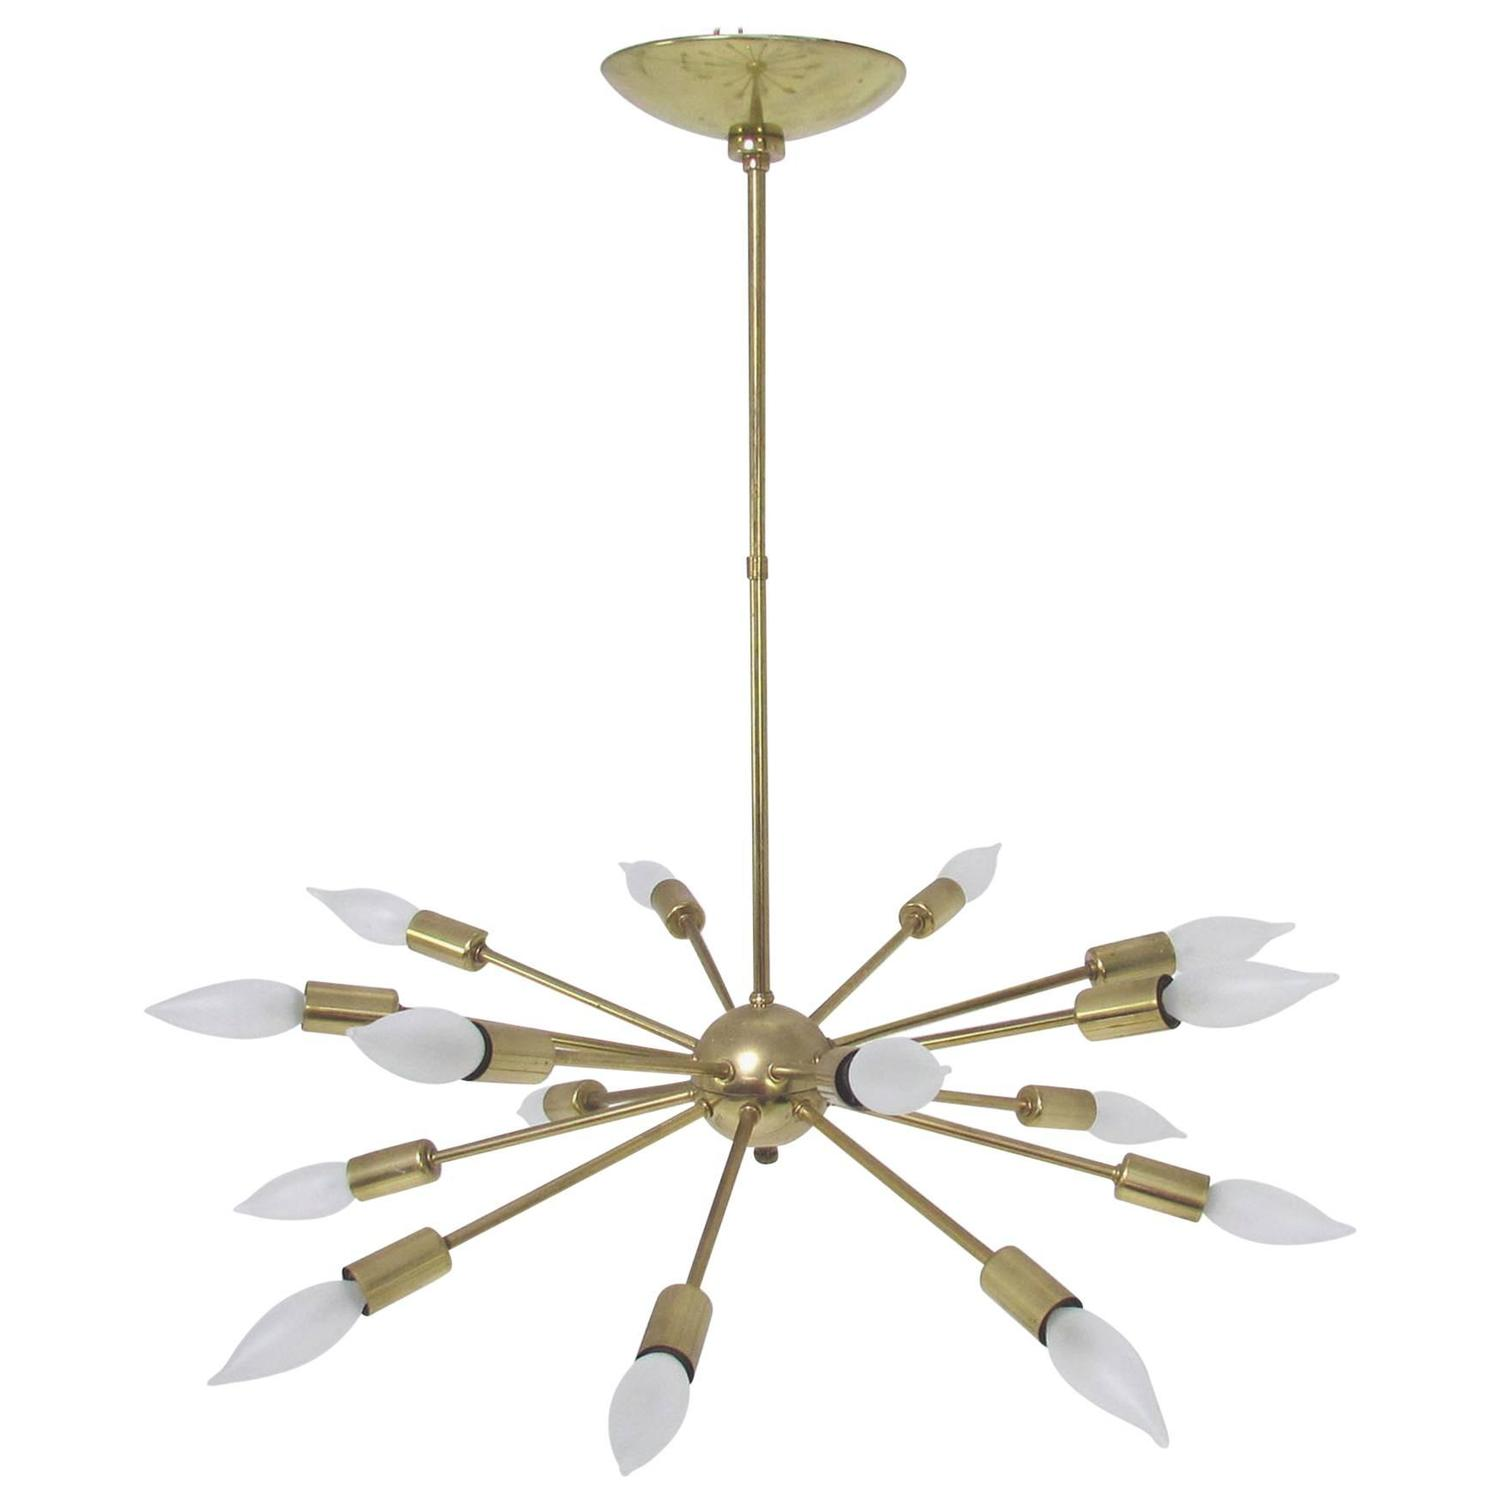 Original Sputnik Chandelier Light Fixture In Brass With